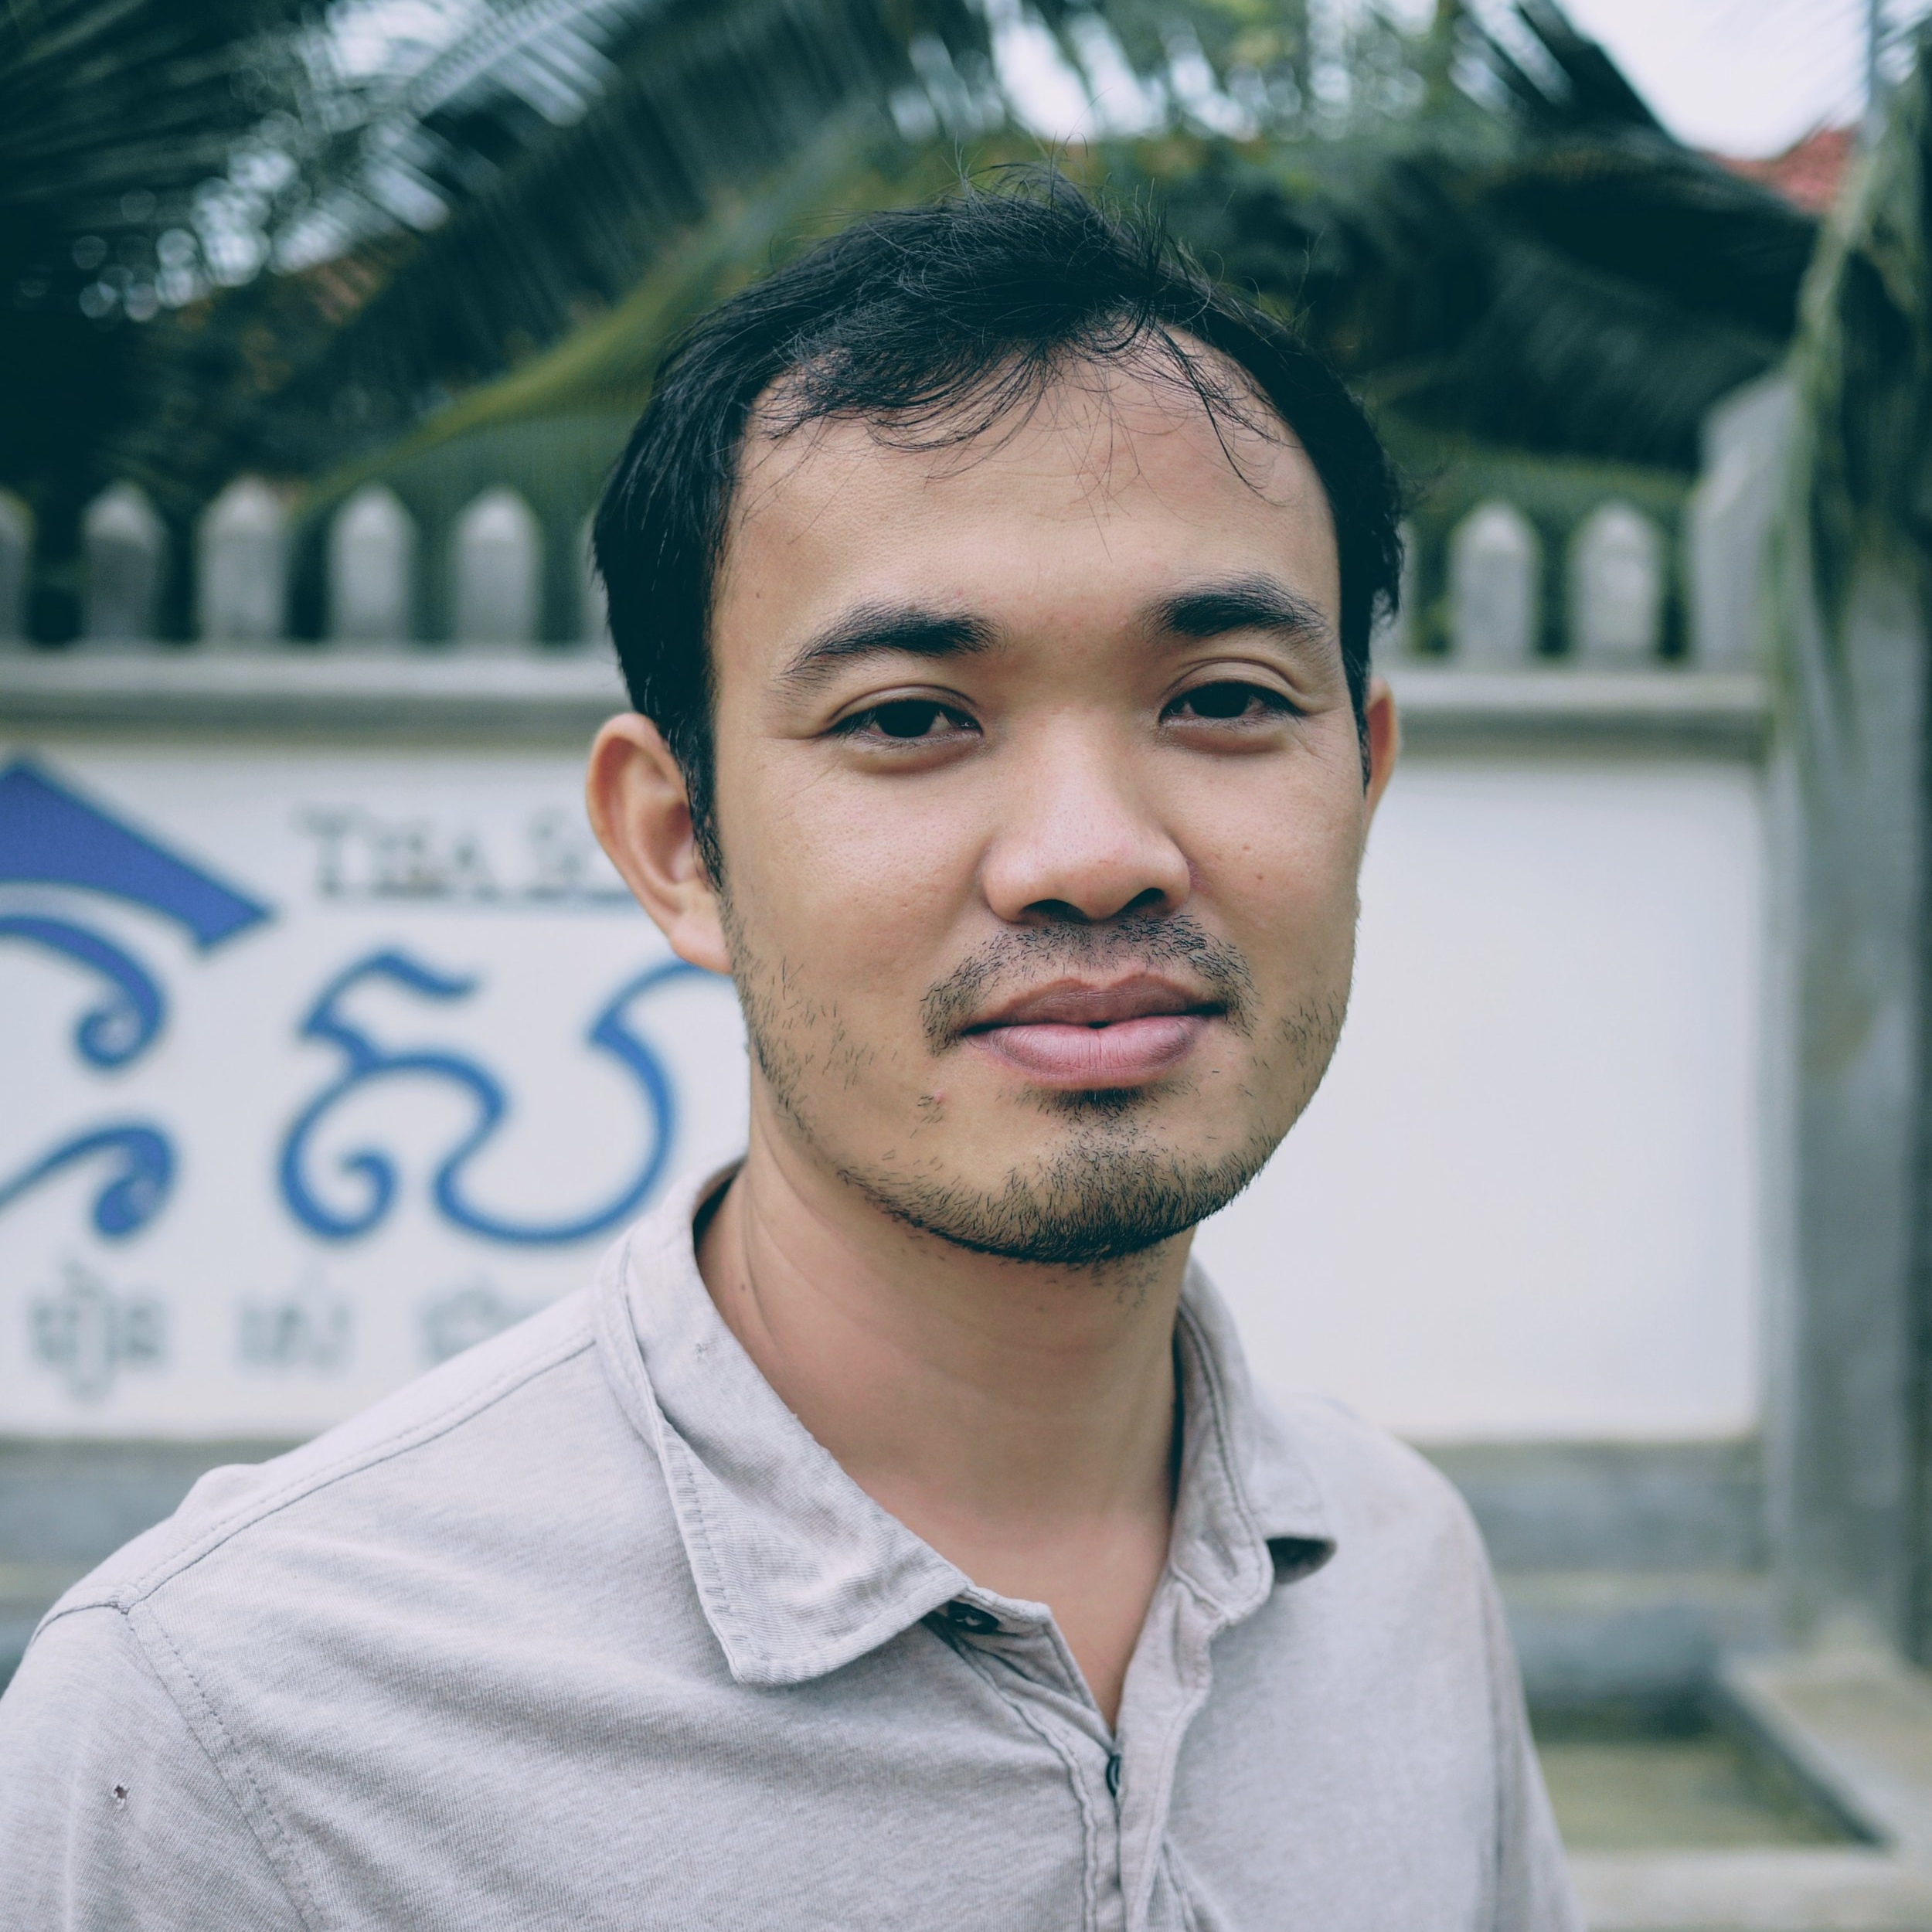 Khem Yuos Panha,  Research Fellow  Panha is a trained economist specializing in international economics and trade. He is currently serving as the Founder-Director of Tisa School in Kampot, where he aims to introduce a modern educational curriculum at an affordable price. Panha was awarded a MEXT Research Scholarship (Monbukagakushō Scholarship) by the Japanese Ministry of Education, Culture, Sports, Science and Technology. He holds an M.A. in Economics from Waseda University, Tokyo, and B.A in economics from Kobe University. Panha speaks English, Japanese and Khmer.